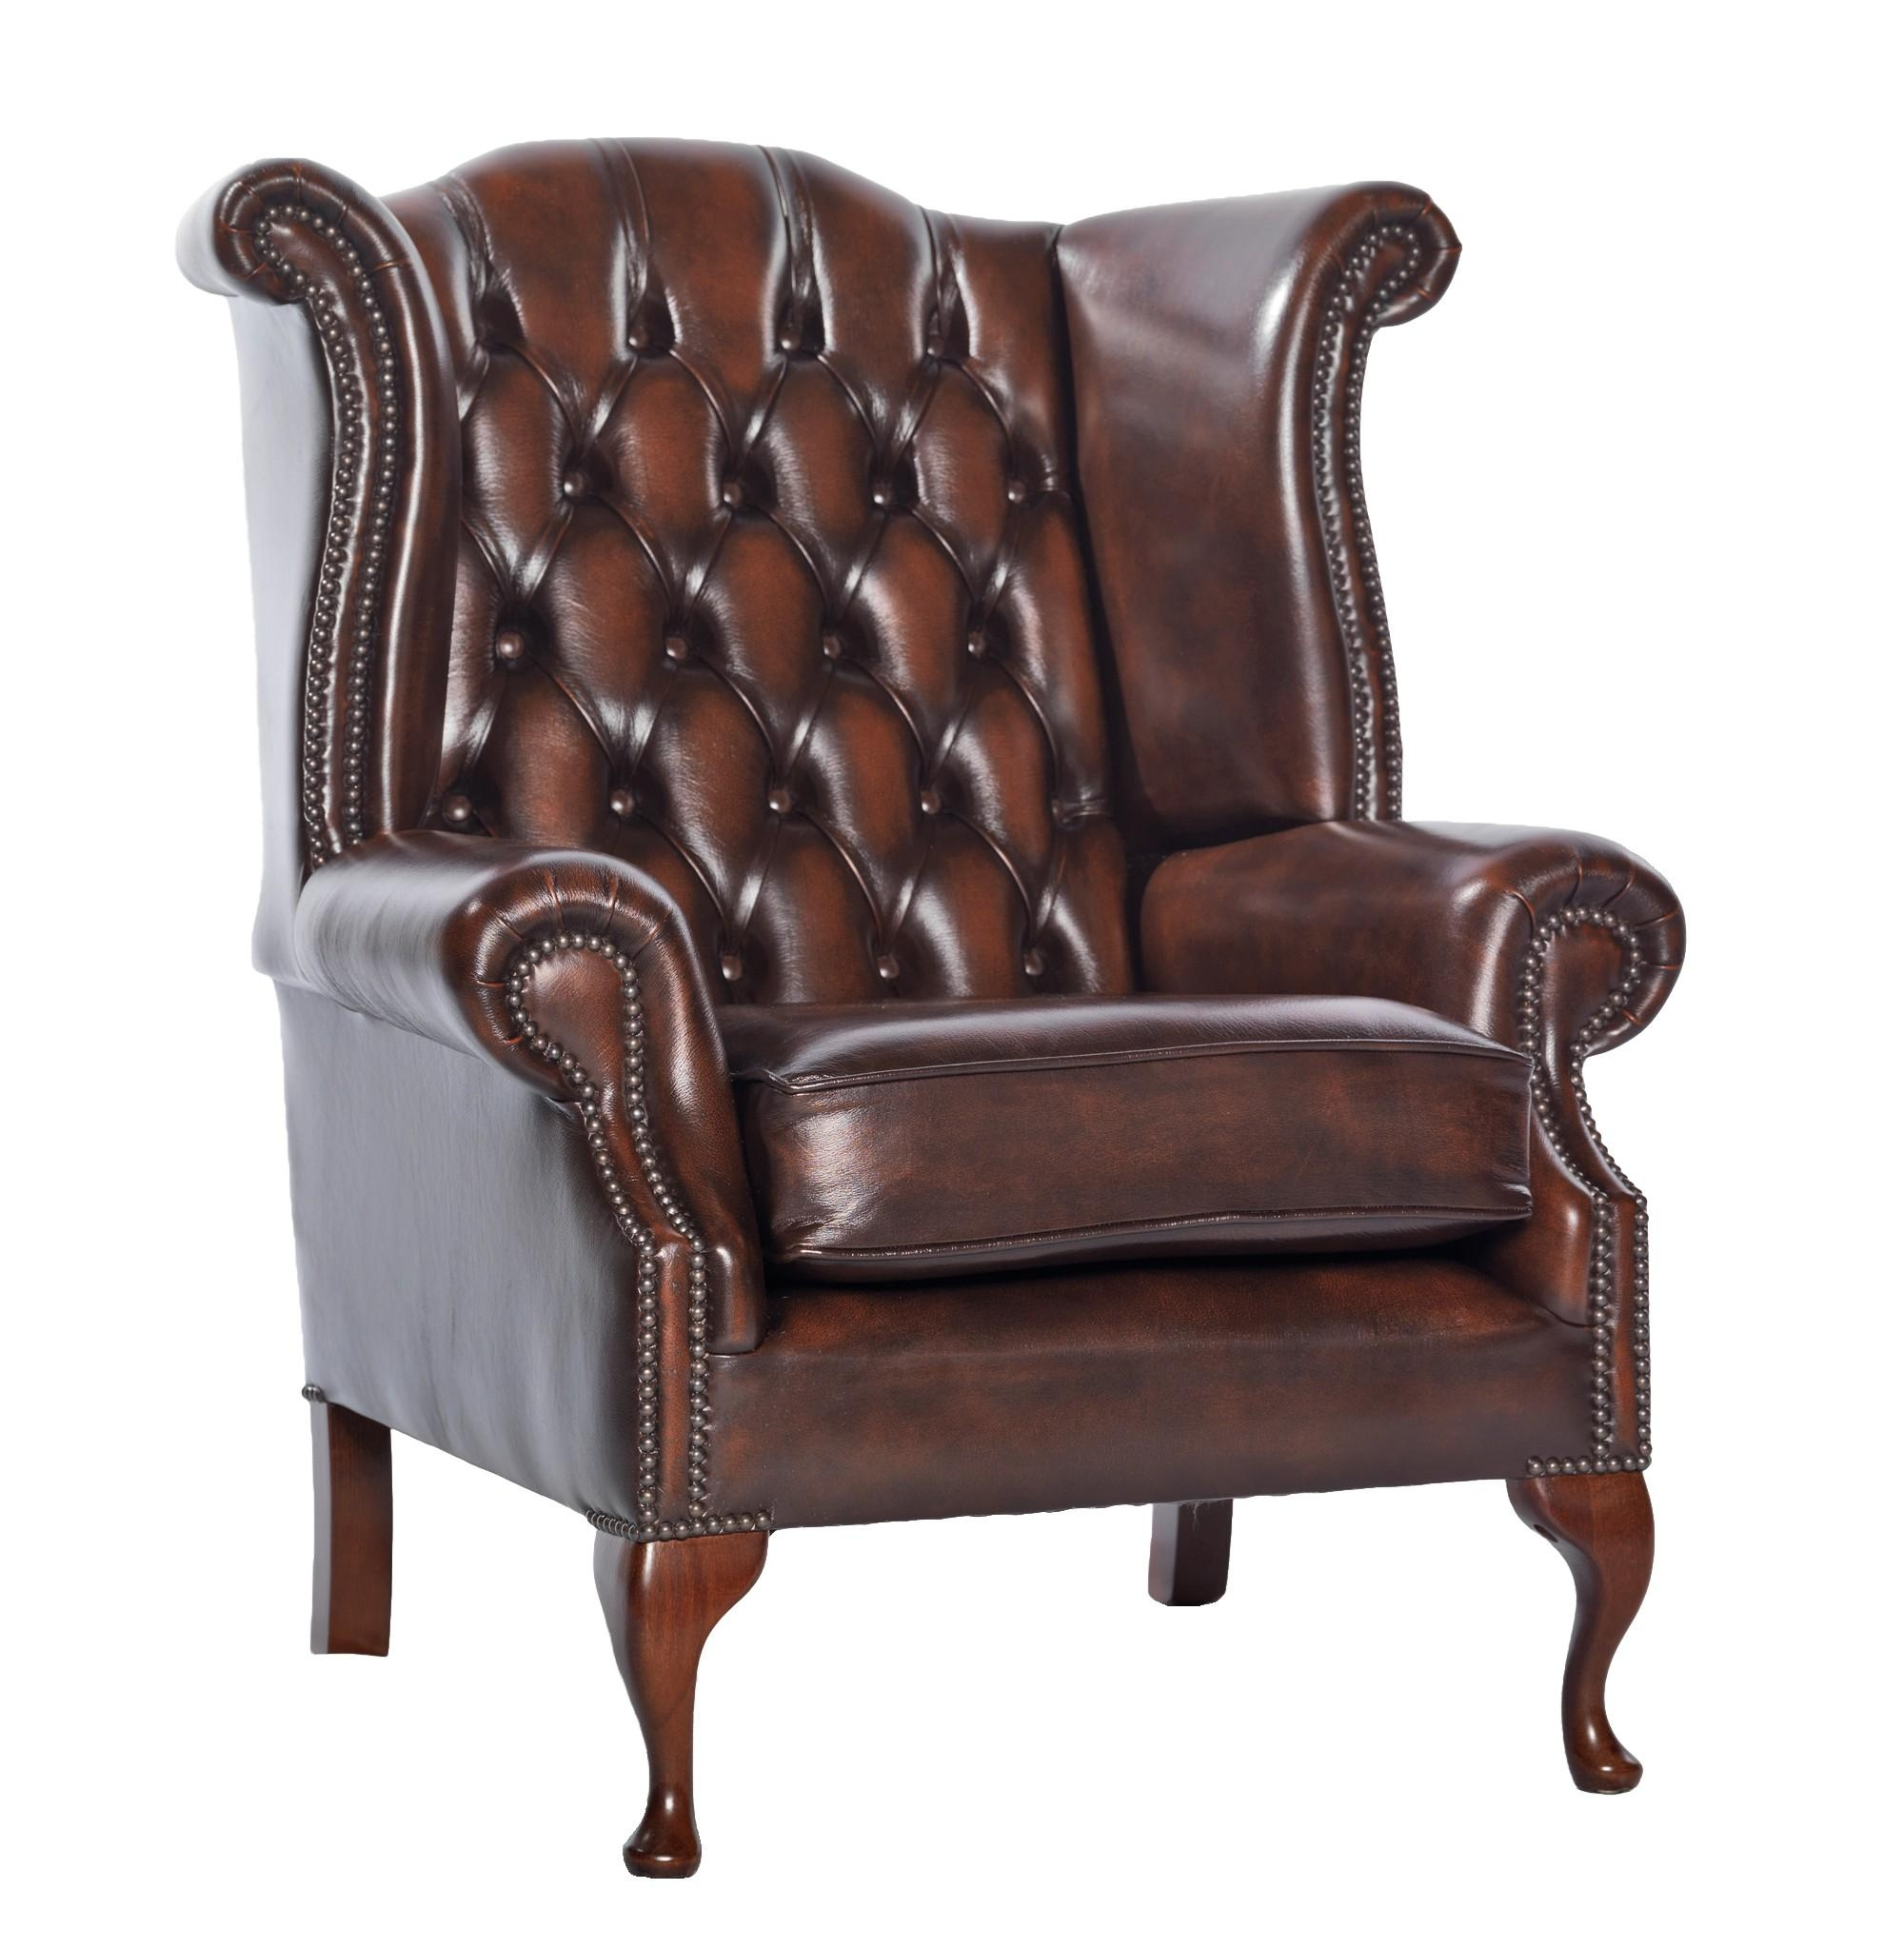 Extremely Creative Chesterfield Chair William Chesterfield Sofa Within Red Chesterfield Chairs (Image 11 of 20)